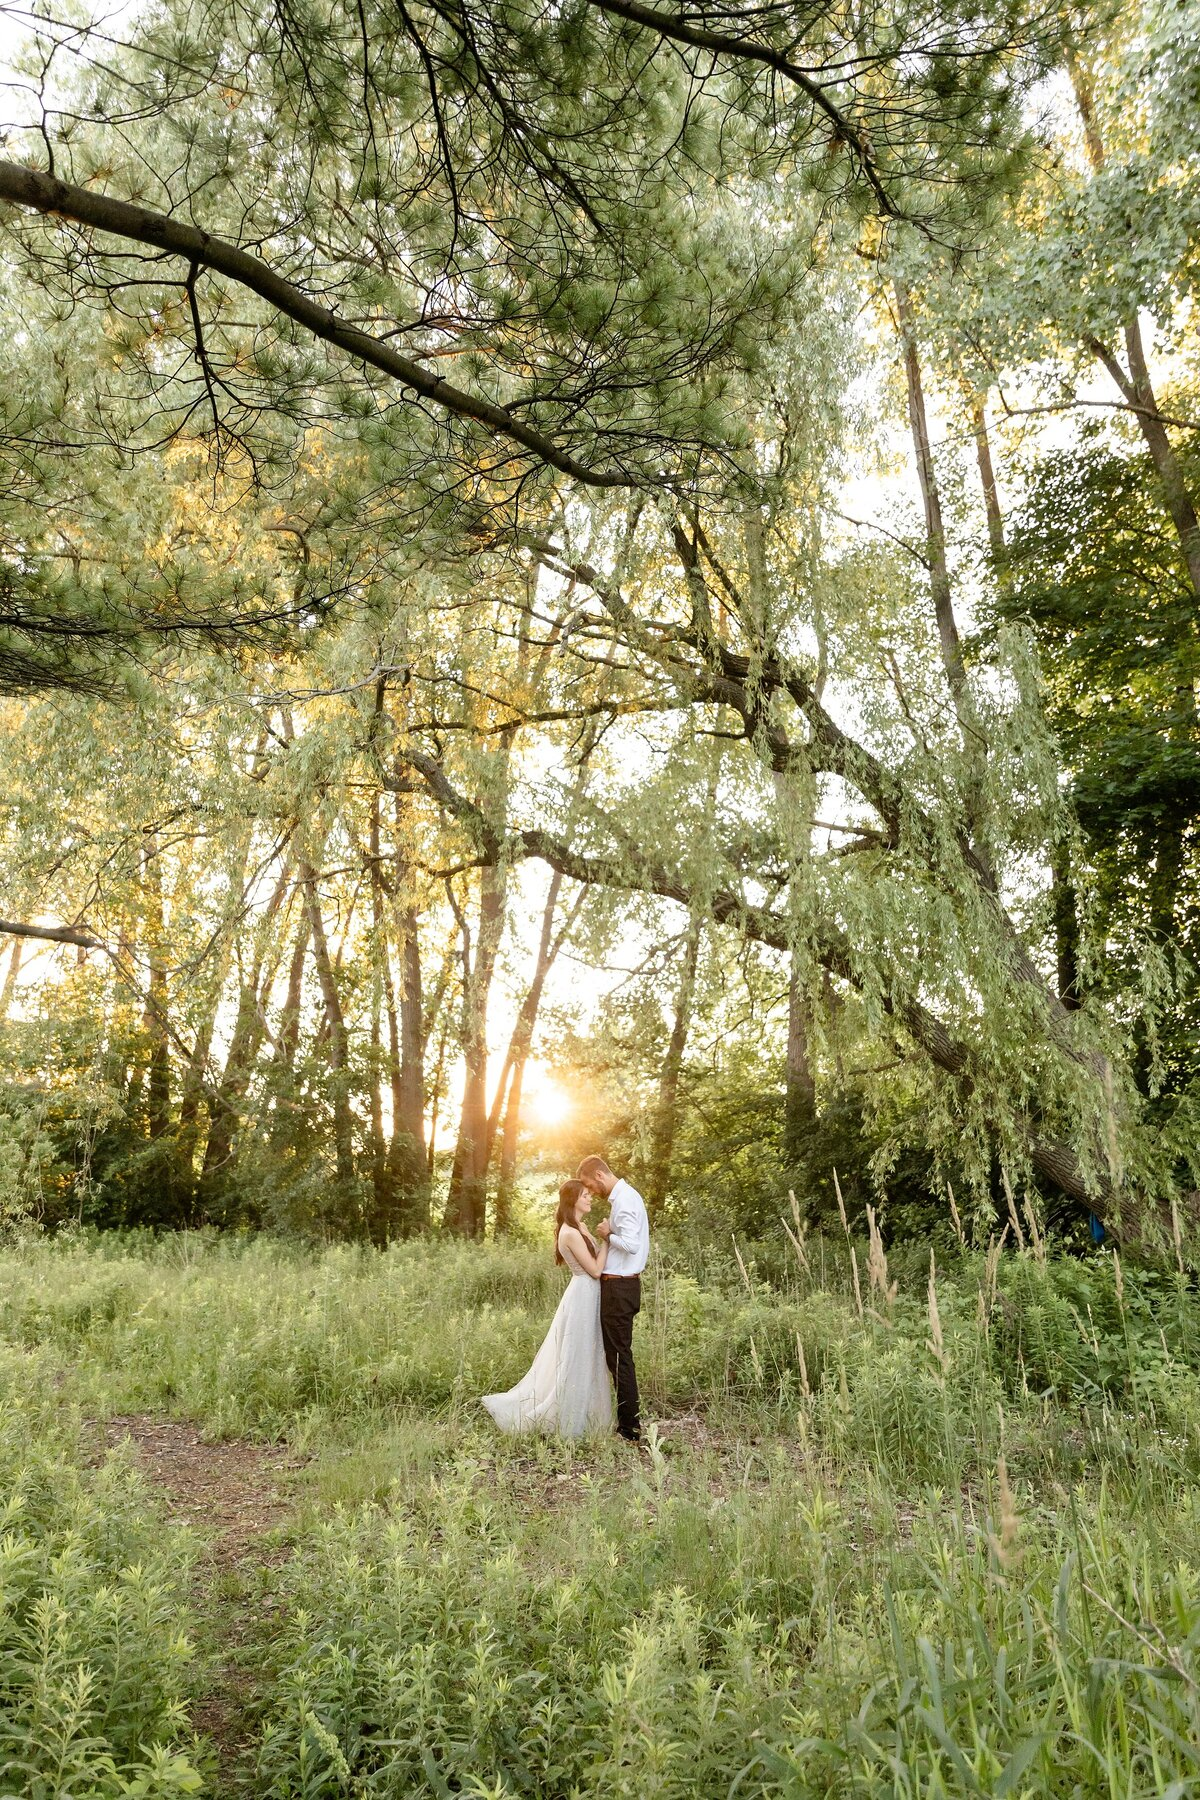 Couple-slow-dancing-with-their-foreheads-together-under-a-beautiful-tree-canopy-at-meadowlily-park-in-London-Ontario